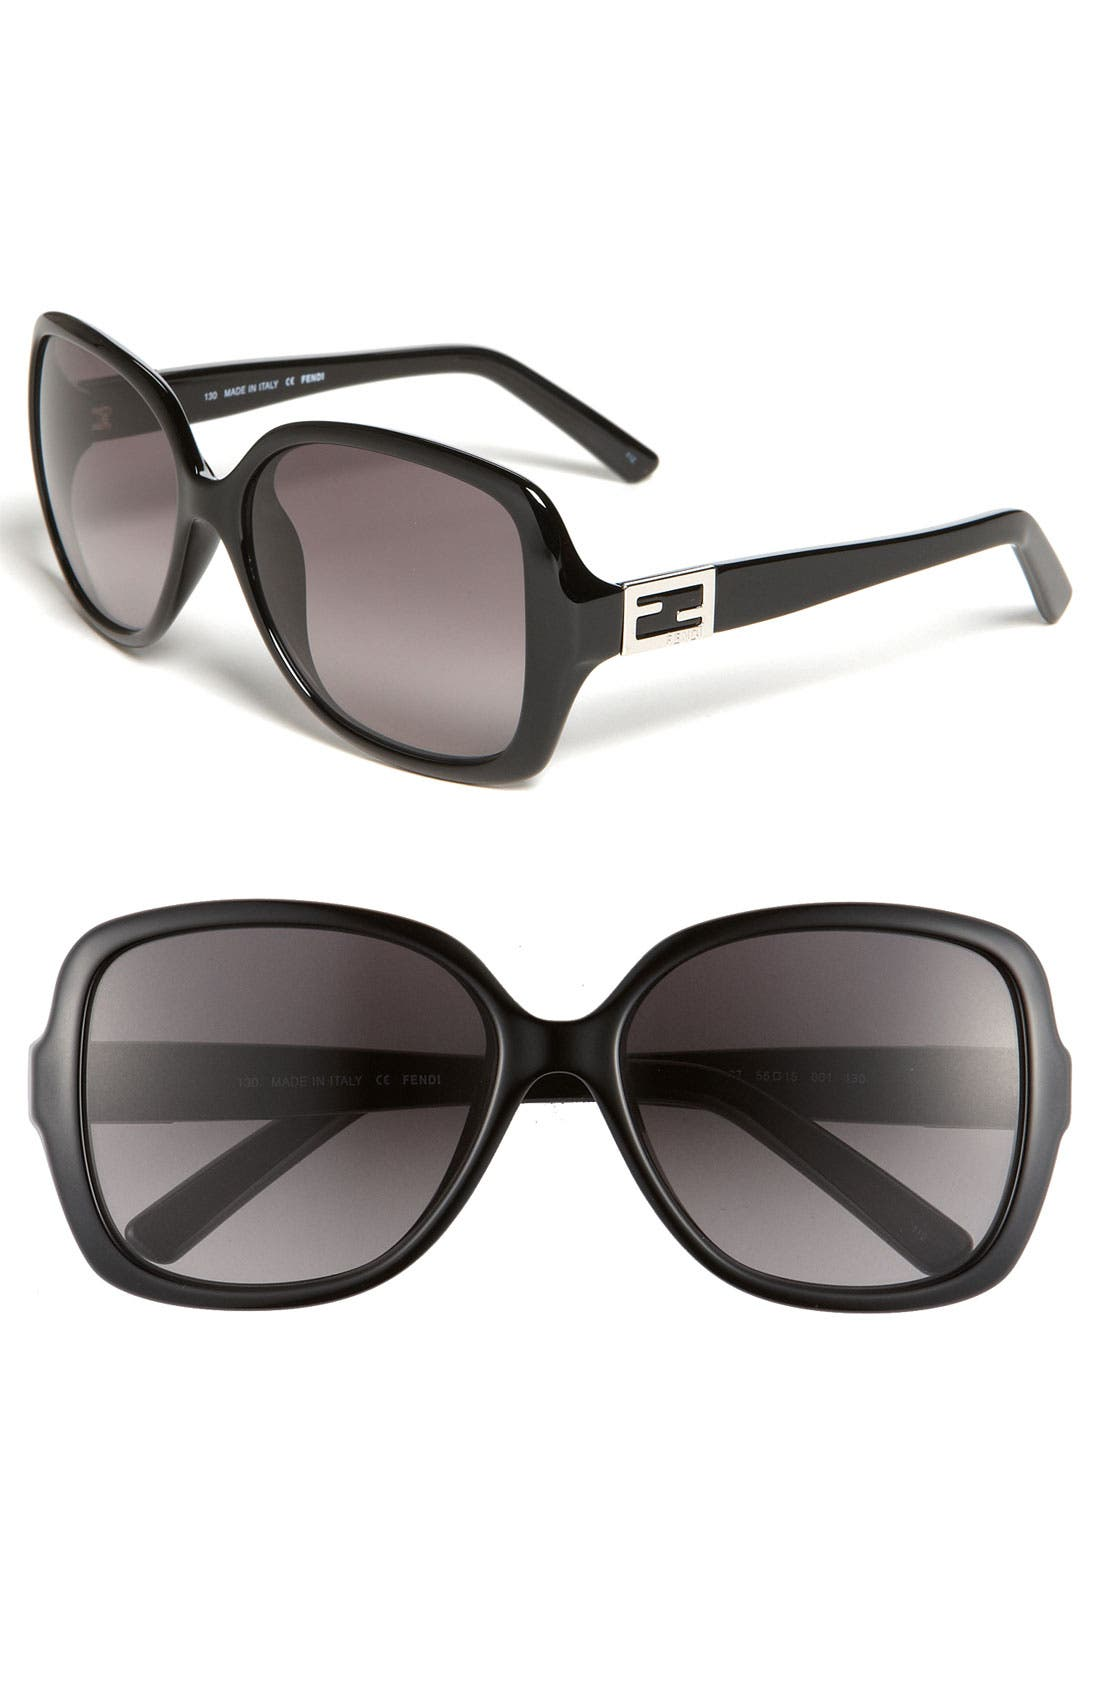 Alternate Image 1 Selected - Fendi 'Classic' 56mm Sunglasses